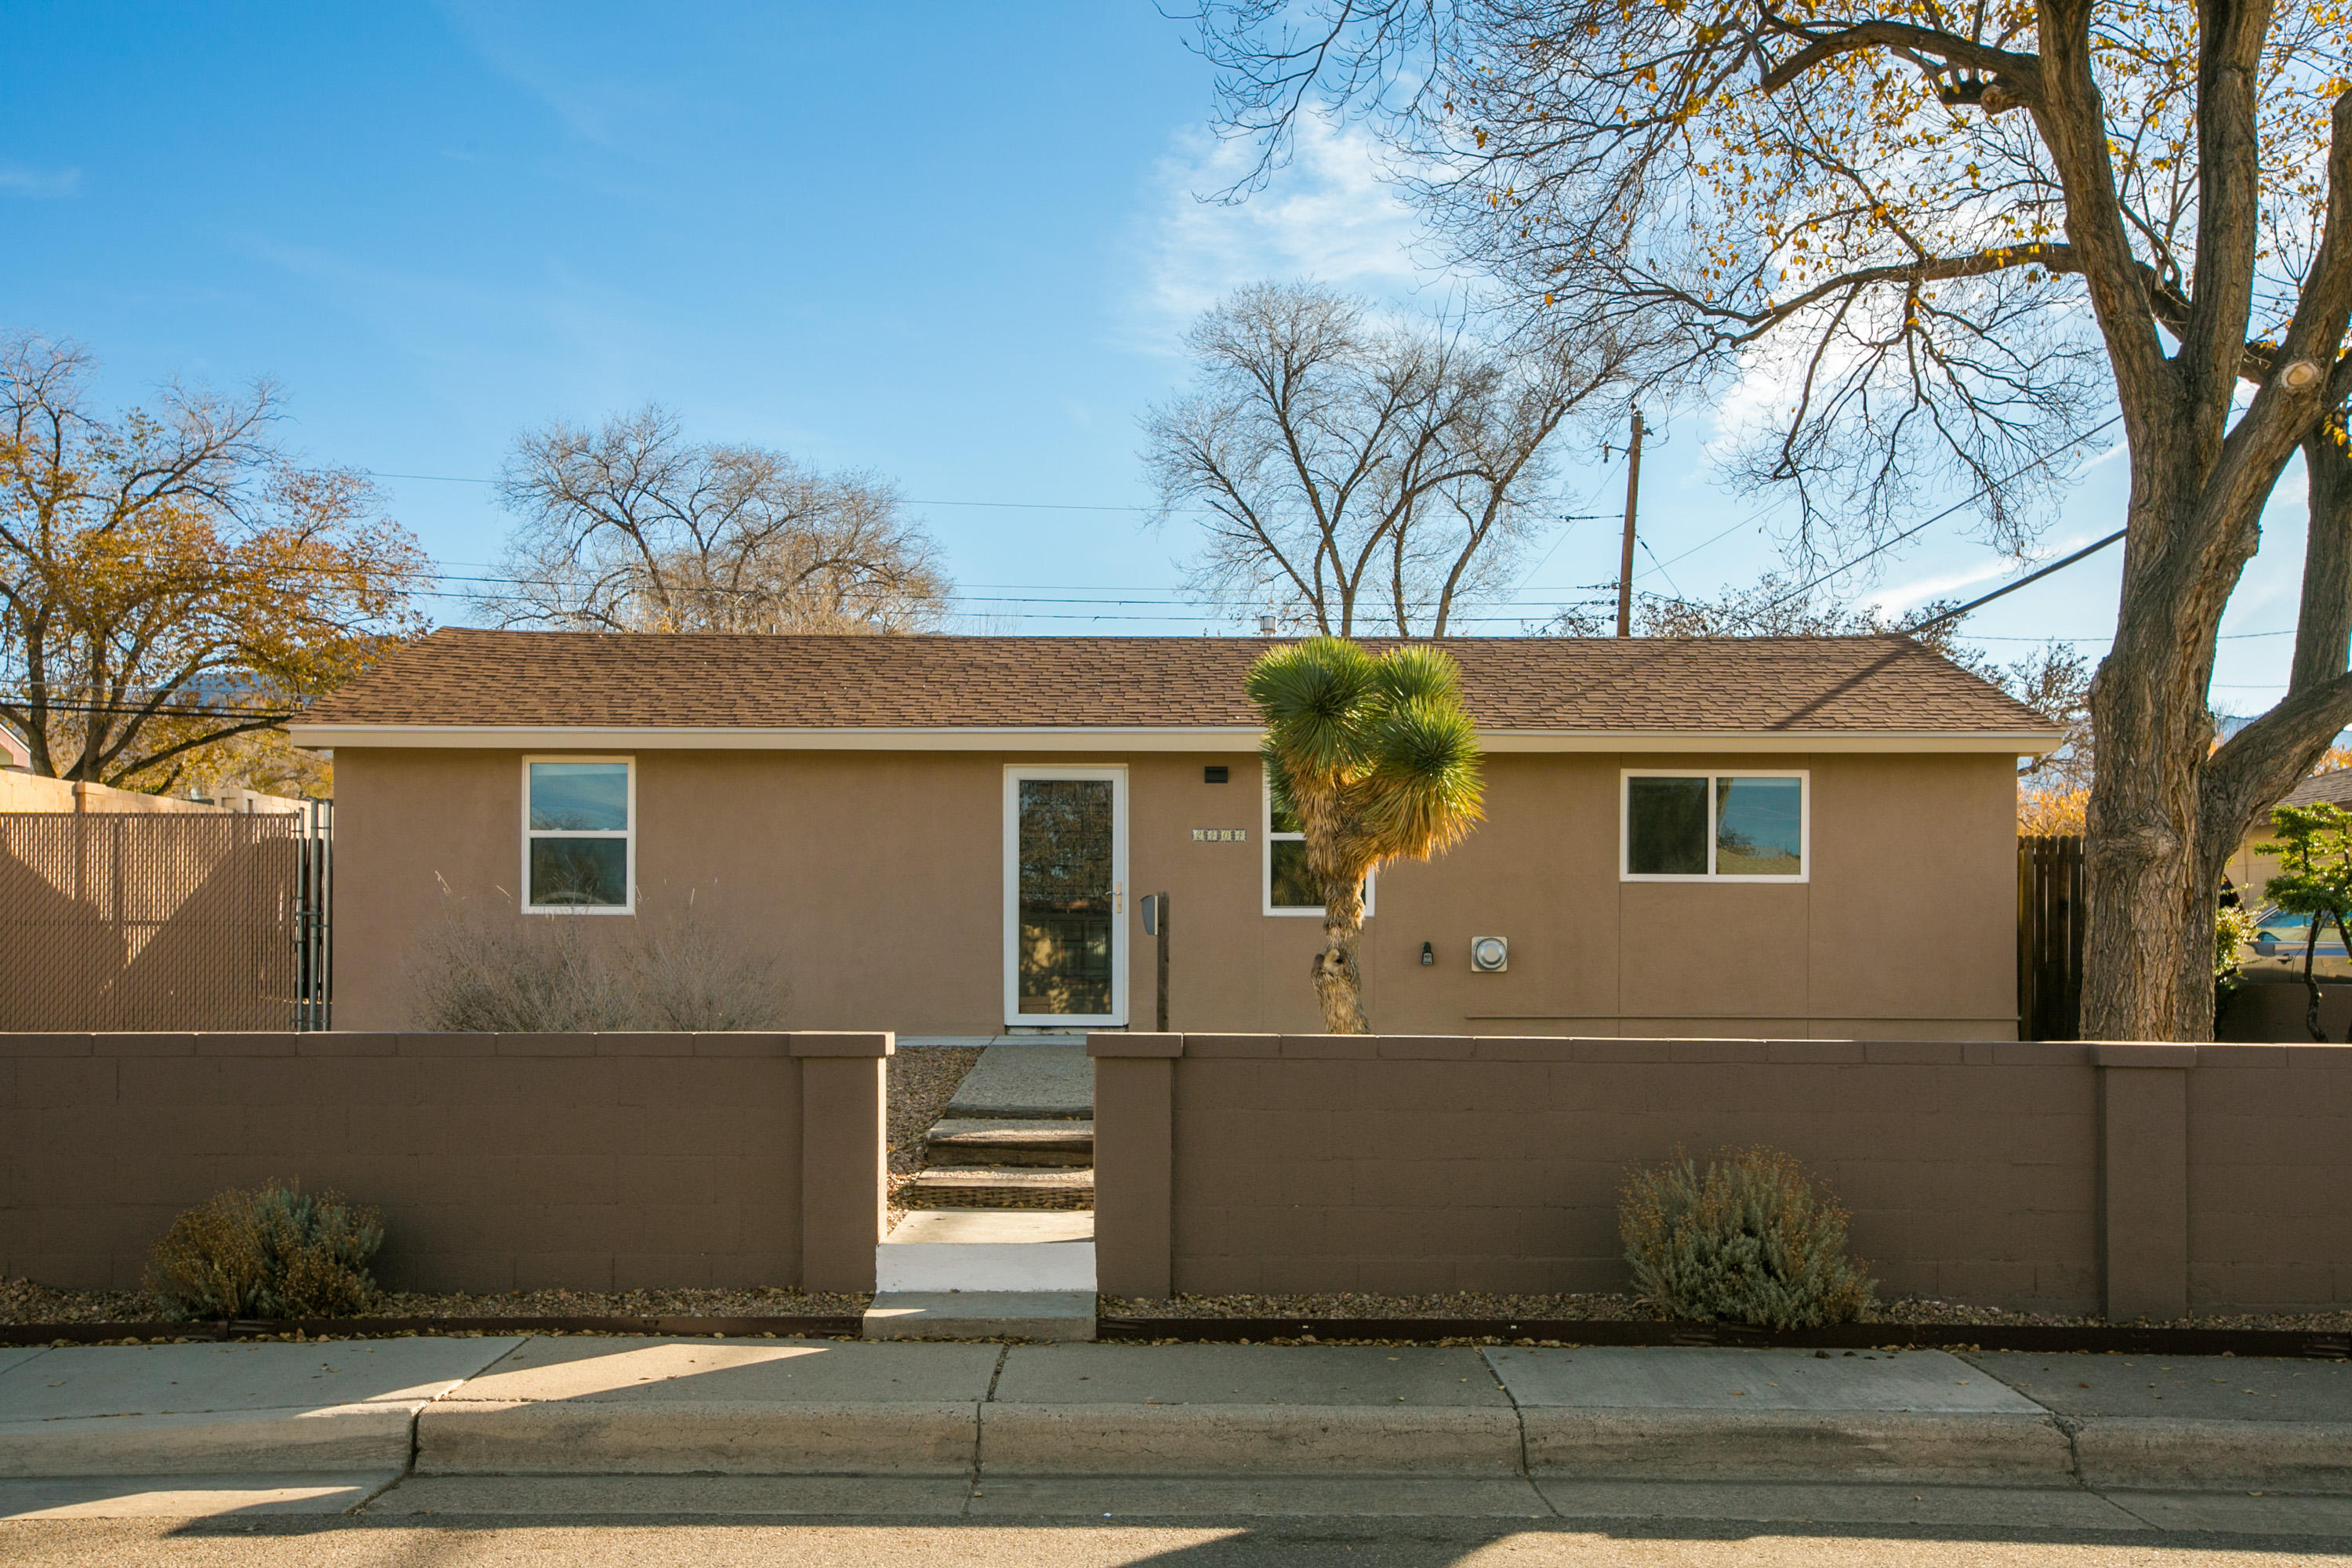 This 2 bedroom home is loaded with updates, including newer roof, heater, new windows, recent concrete patio front and back, new stucco coating, new 200amp electrical upgrade, and much more. Great zeroscape yard, gate on north side for car access or RV parking.